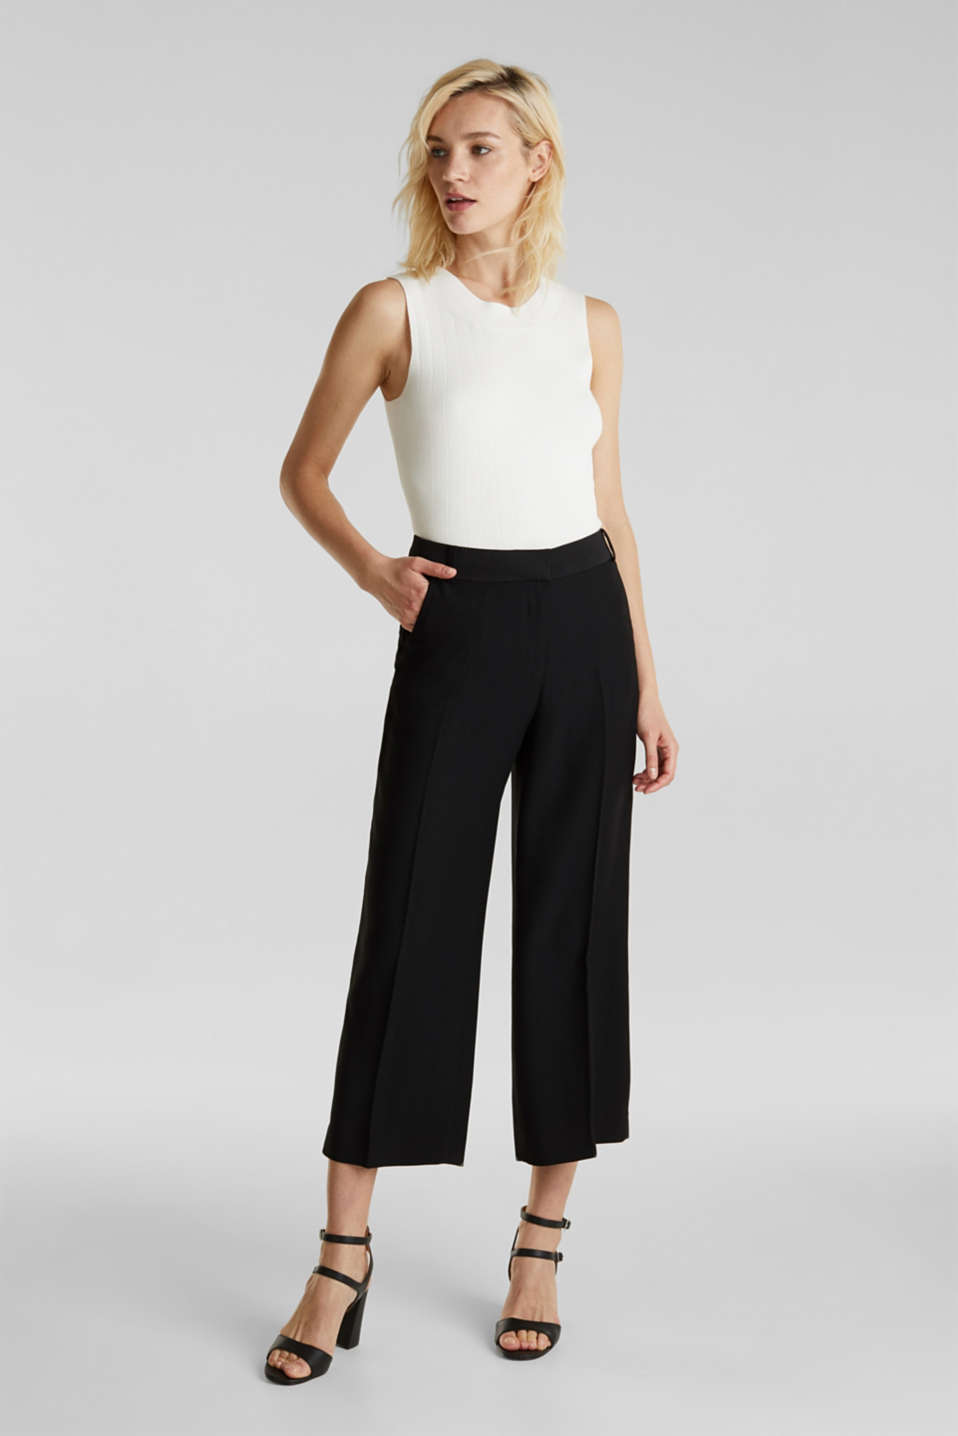 MATT SHINE mix + match culottes